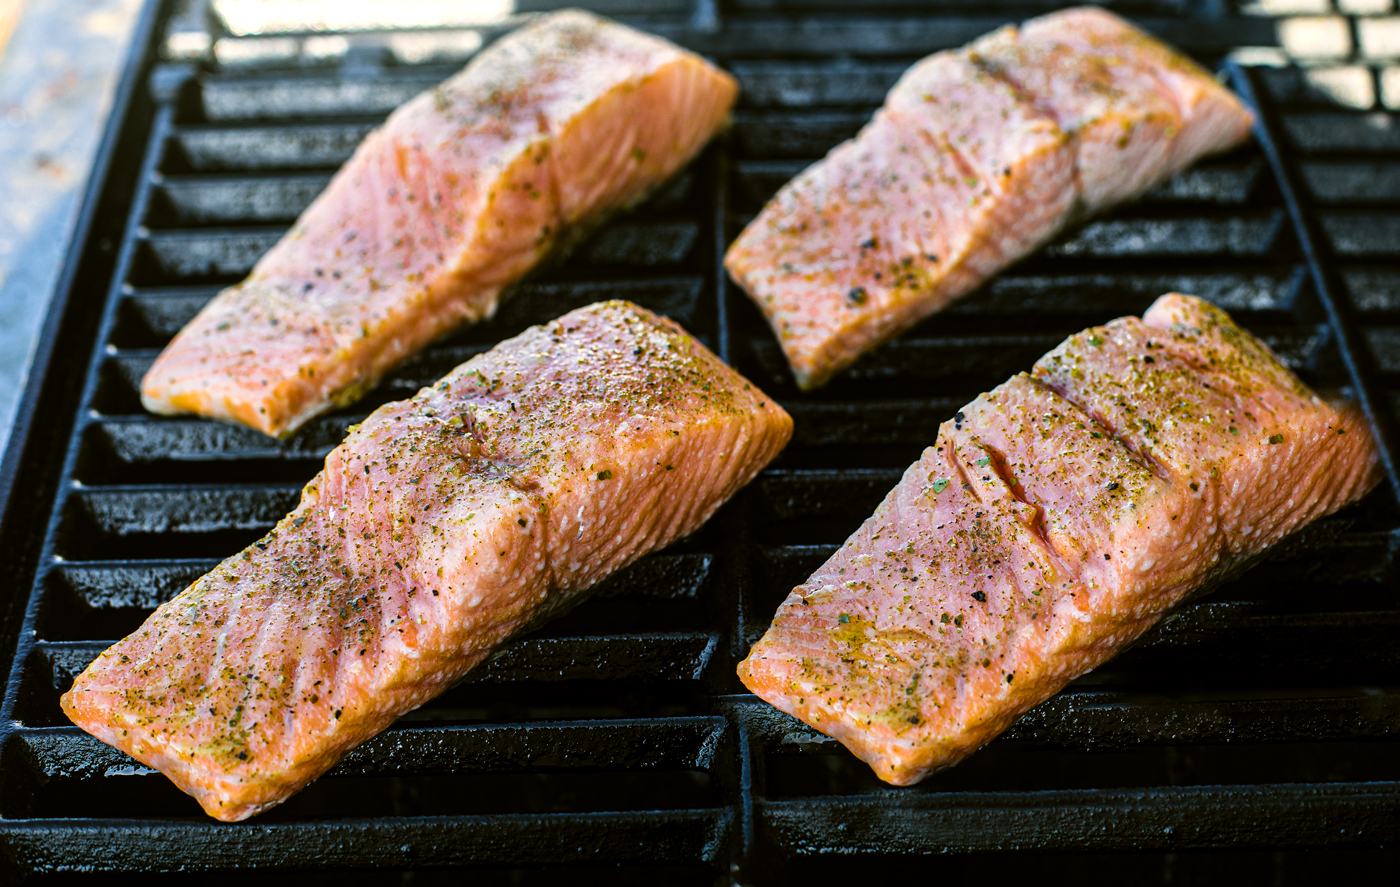 Close up of salmon fillets on grill.